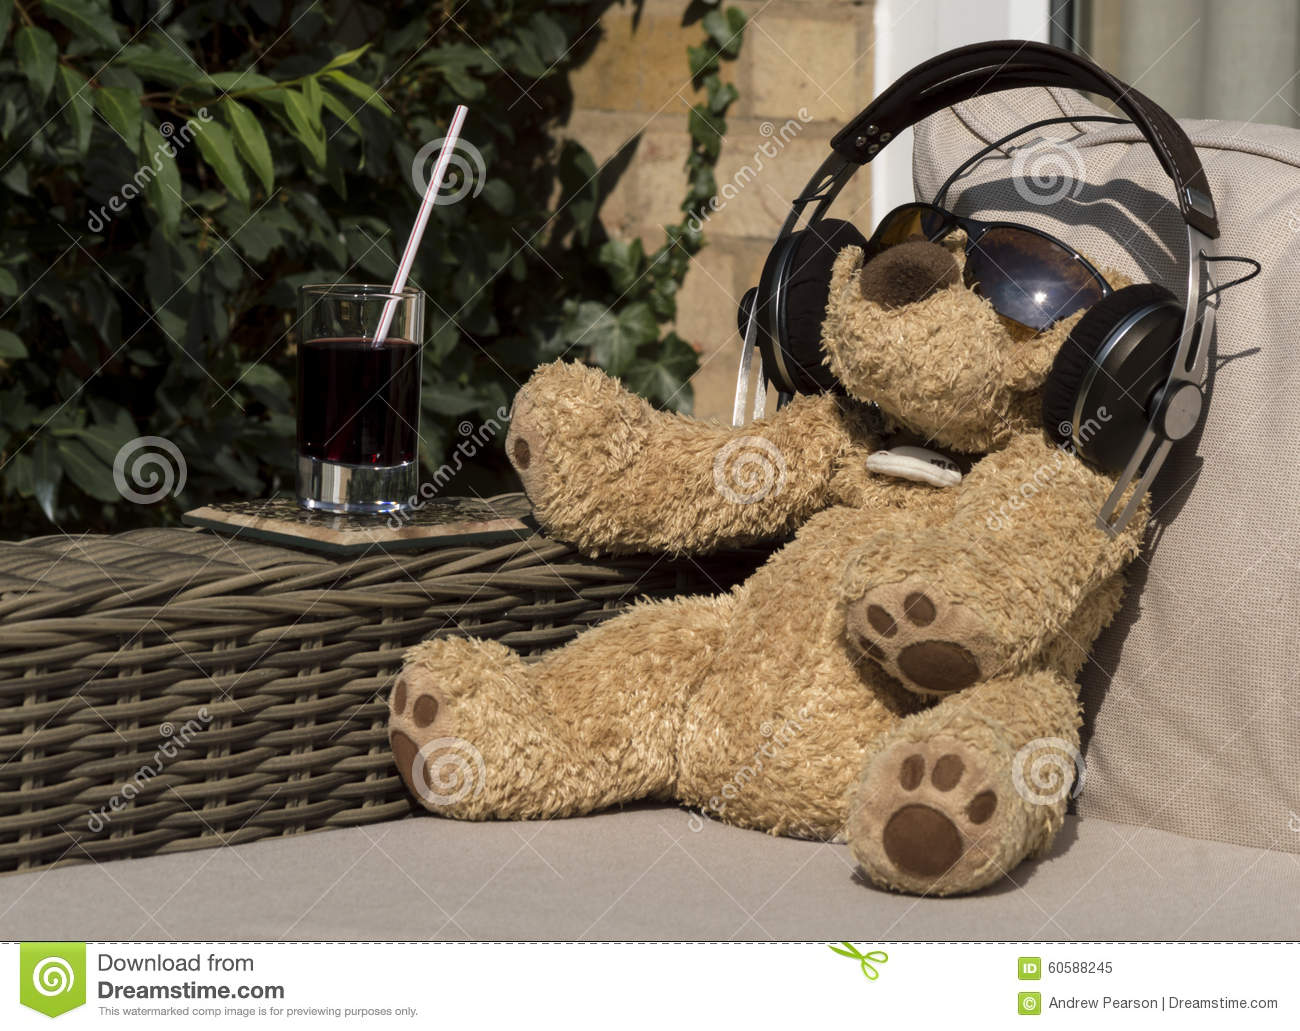 Chilling With Music Stock Photo - Image: 60588245 Relaxing Dog Music